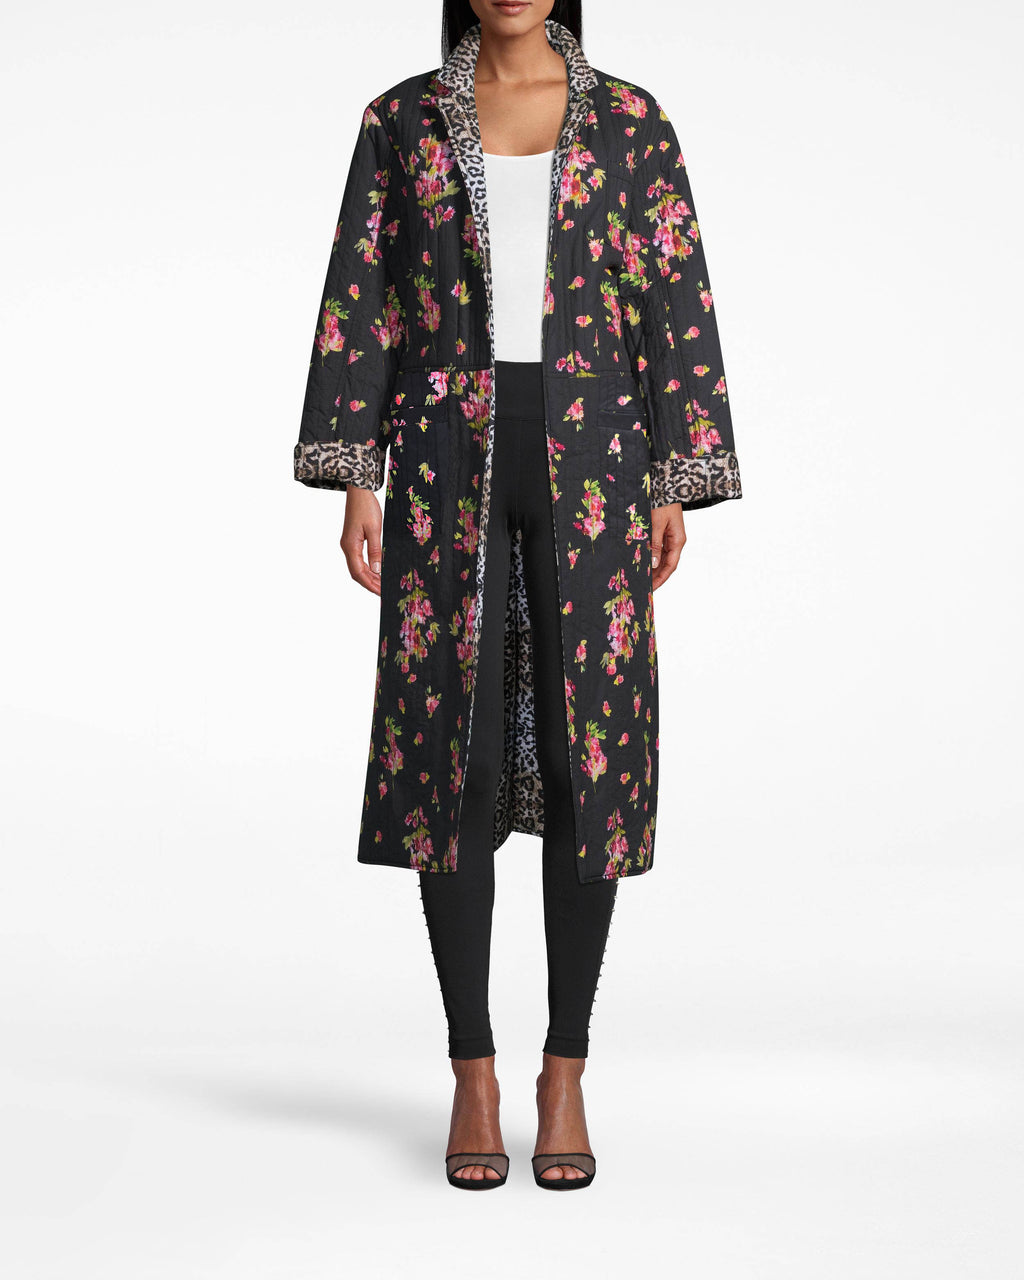 CO20165 - PINK DAWN OVERSIZED JACKET - outerwear - jackets - FLORA AND FAUNA. LEOPARD AND FLORAL PRINTS ARE AN UNEXPECTED BUT WELCOME SURPRISE ON THIS STATEMENT COAT. ANKLE LENGTH WITH A TIE WAIST. PAIR WITH ALLBLACK AND RAINBOOTS FOR AN ELEVATED RAINY DAY LOOK.